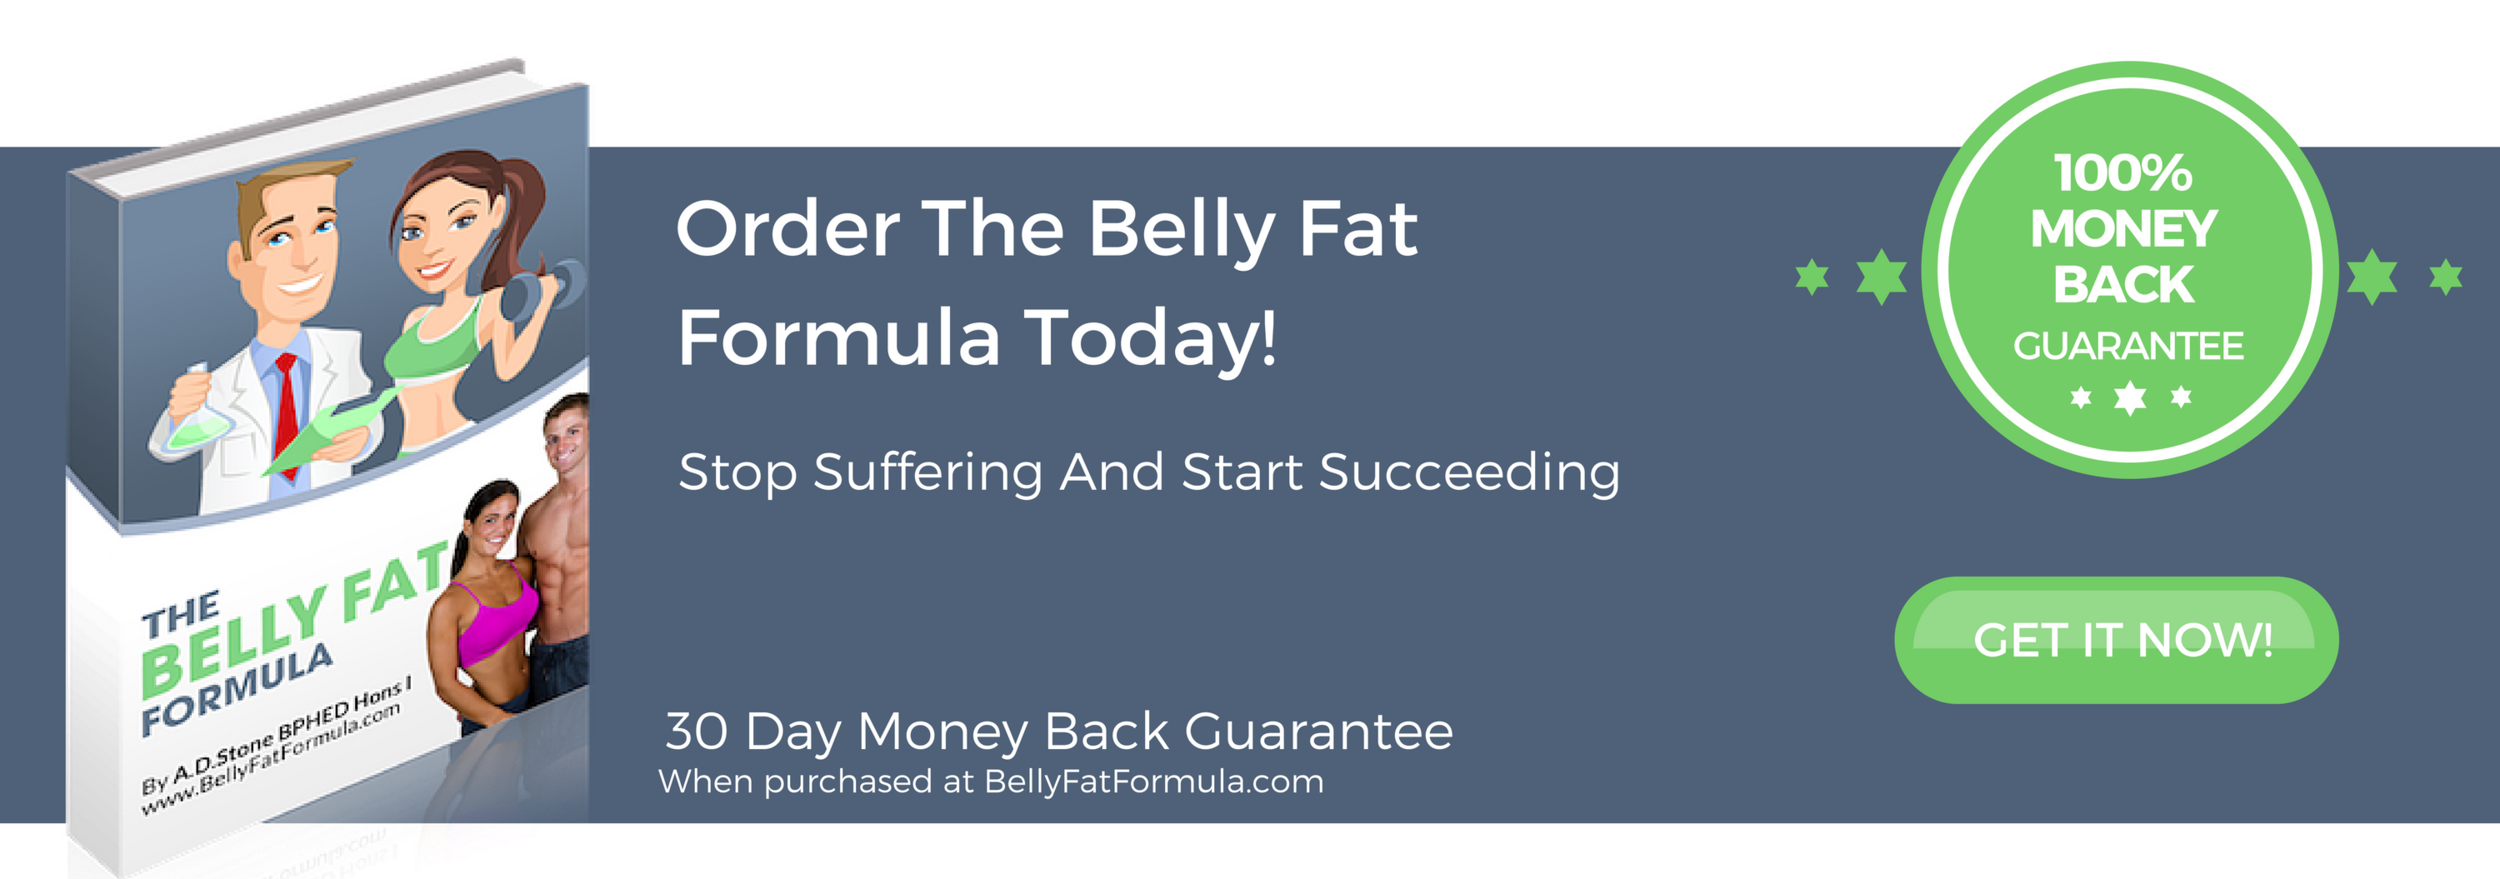 Get your copy of the belly fat formula